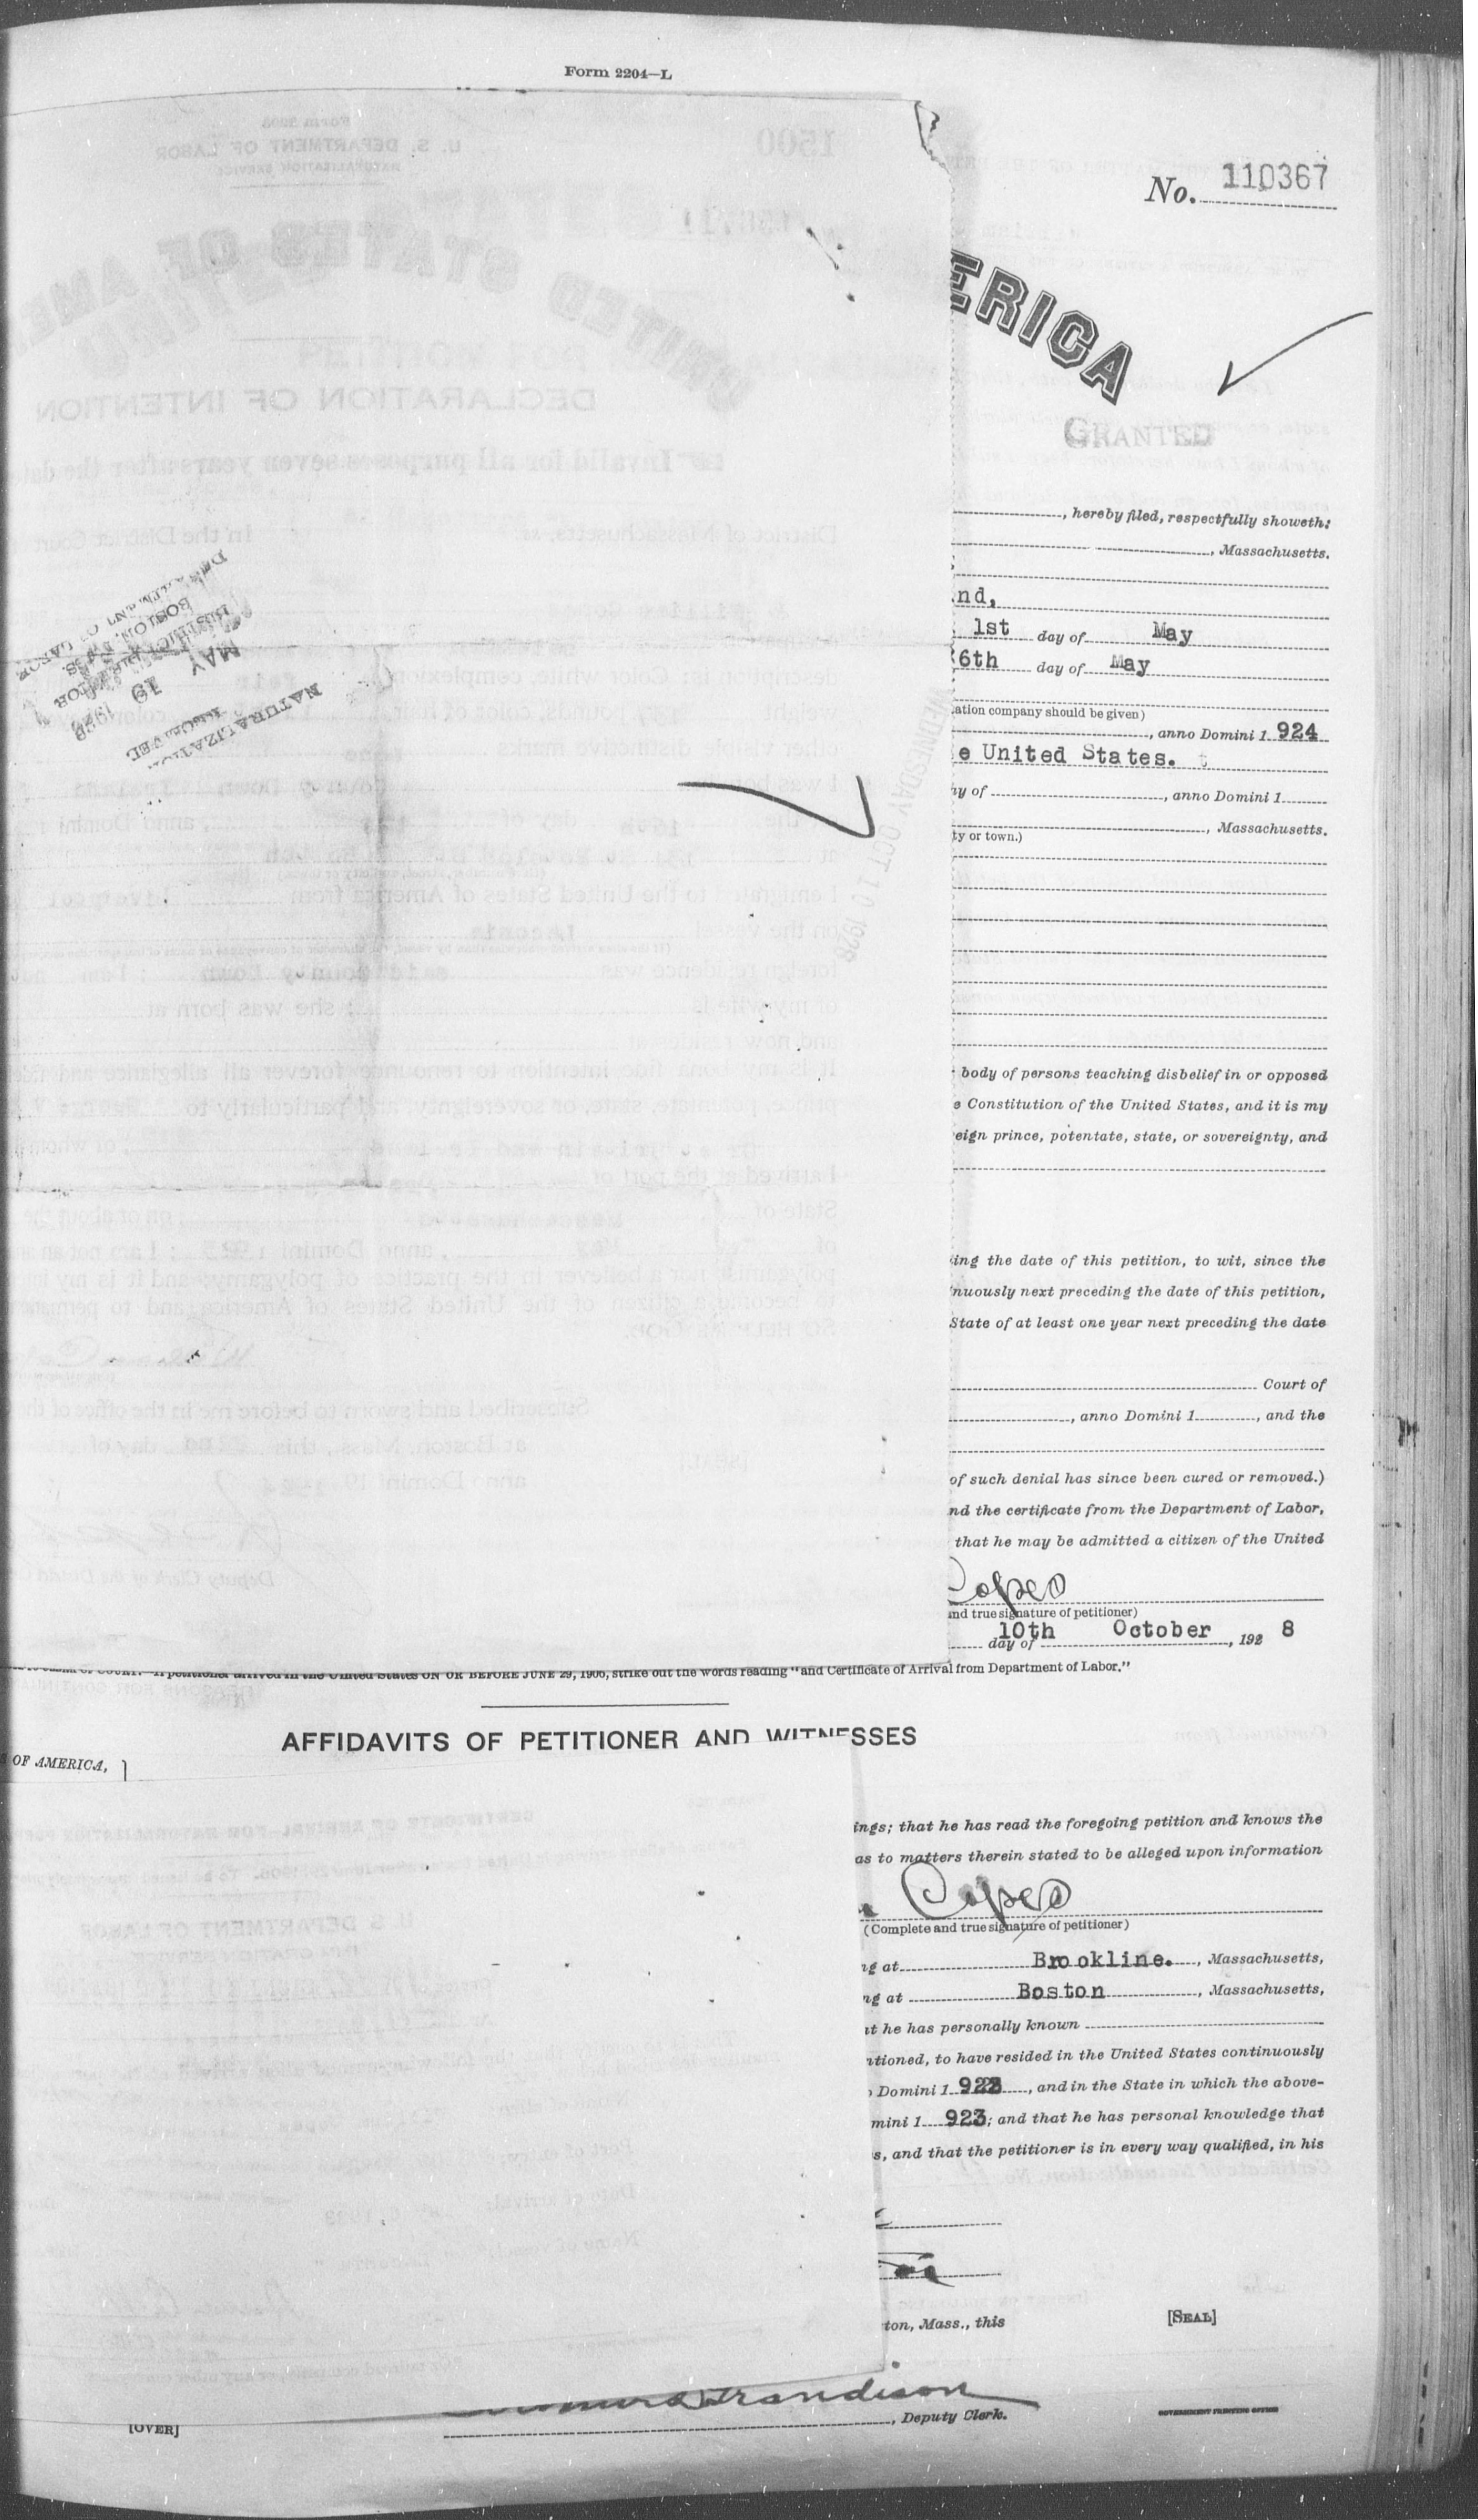 Petition for Naturalization of William Copes